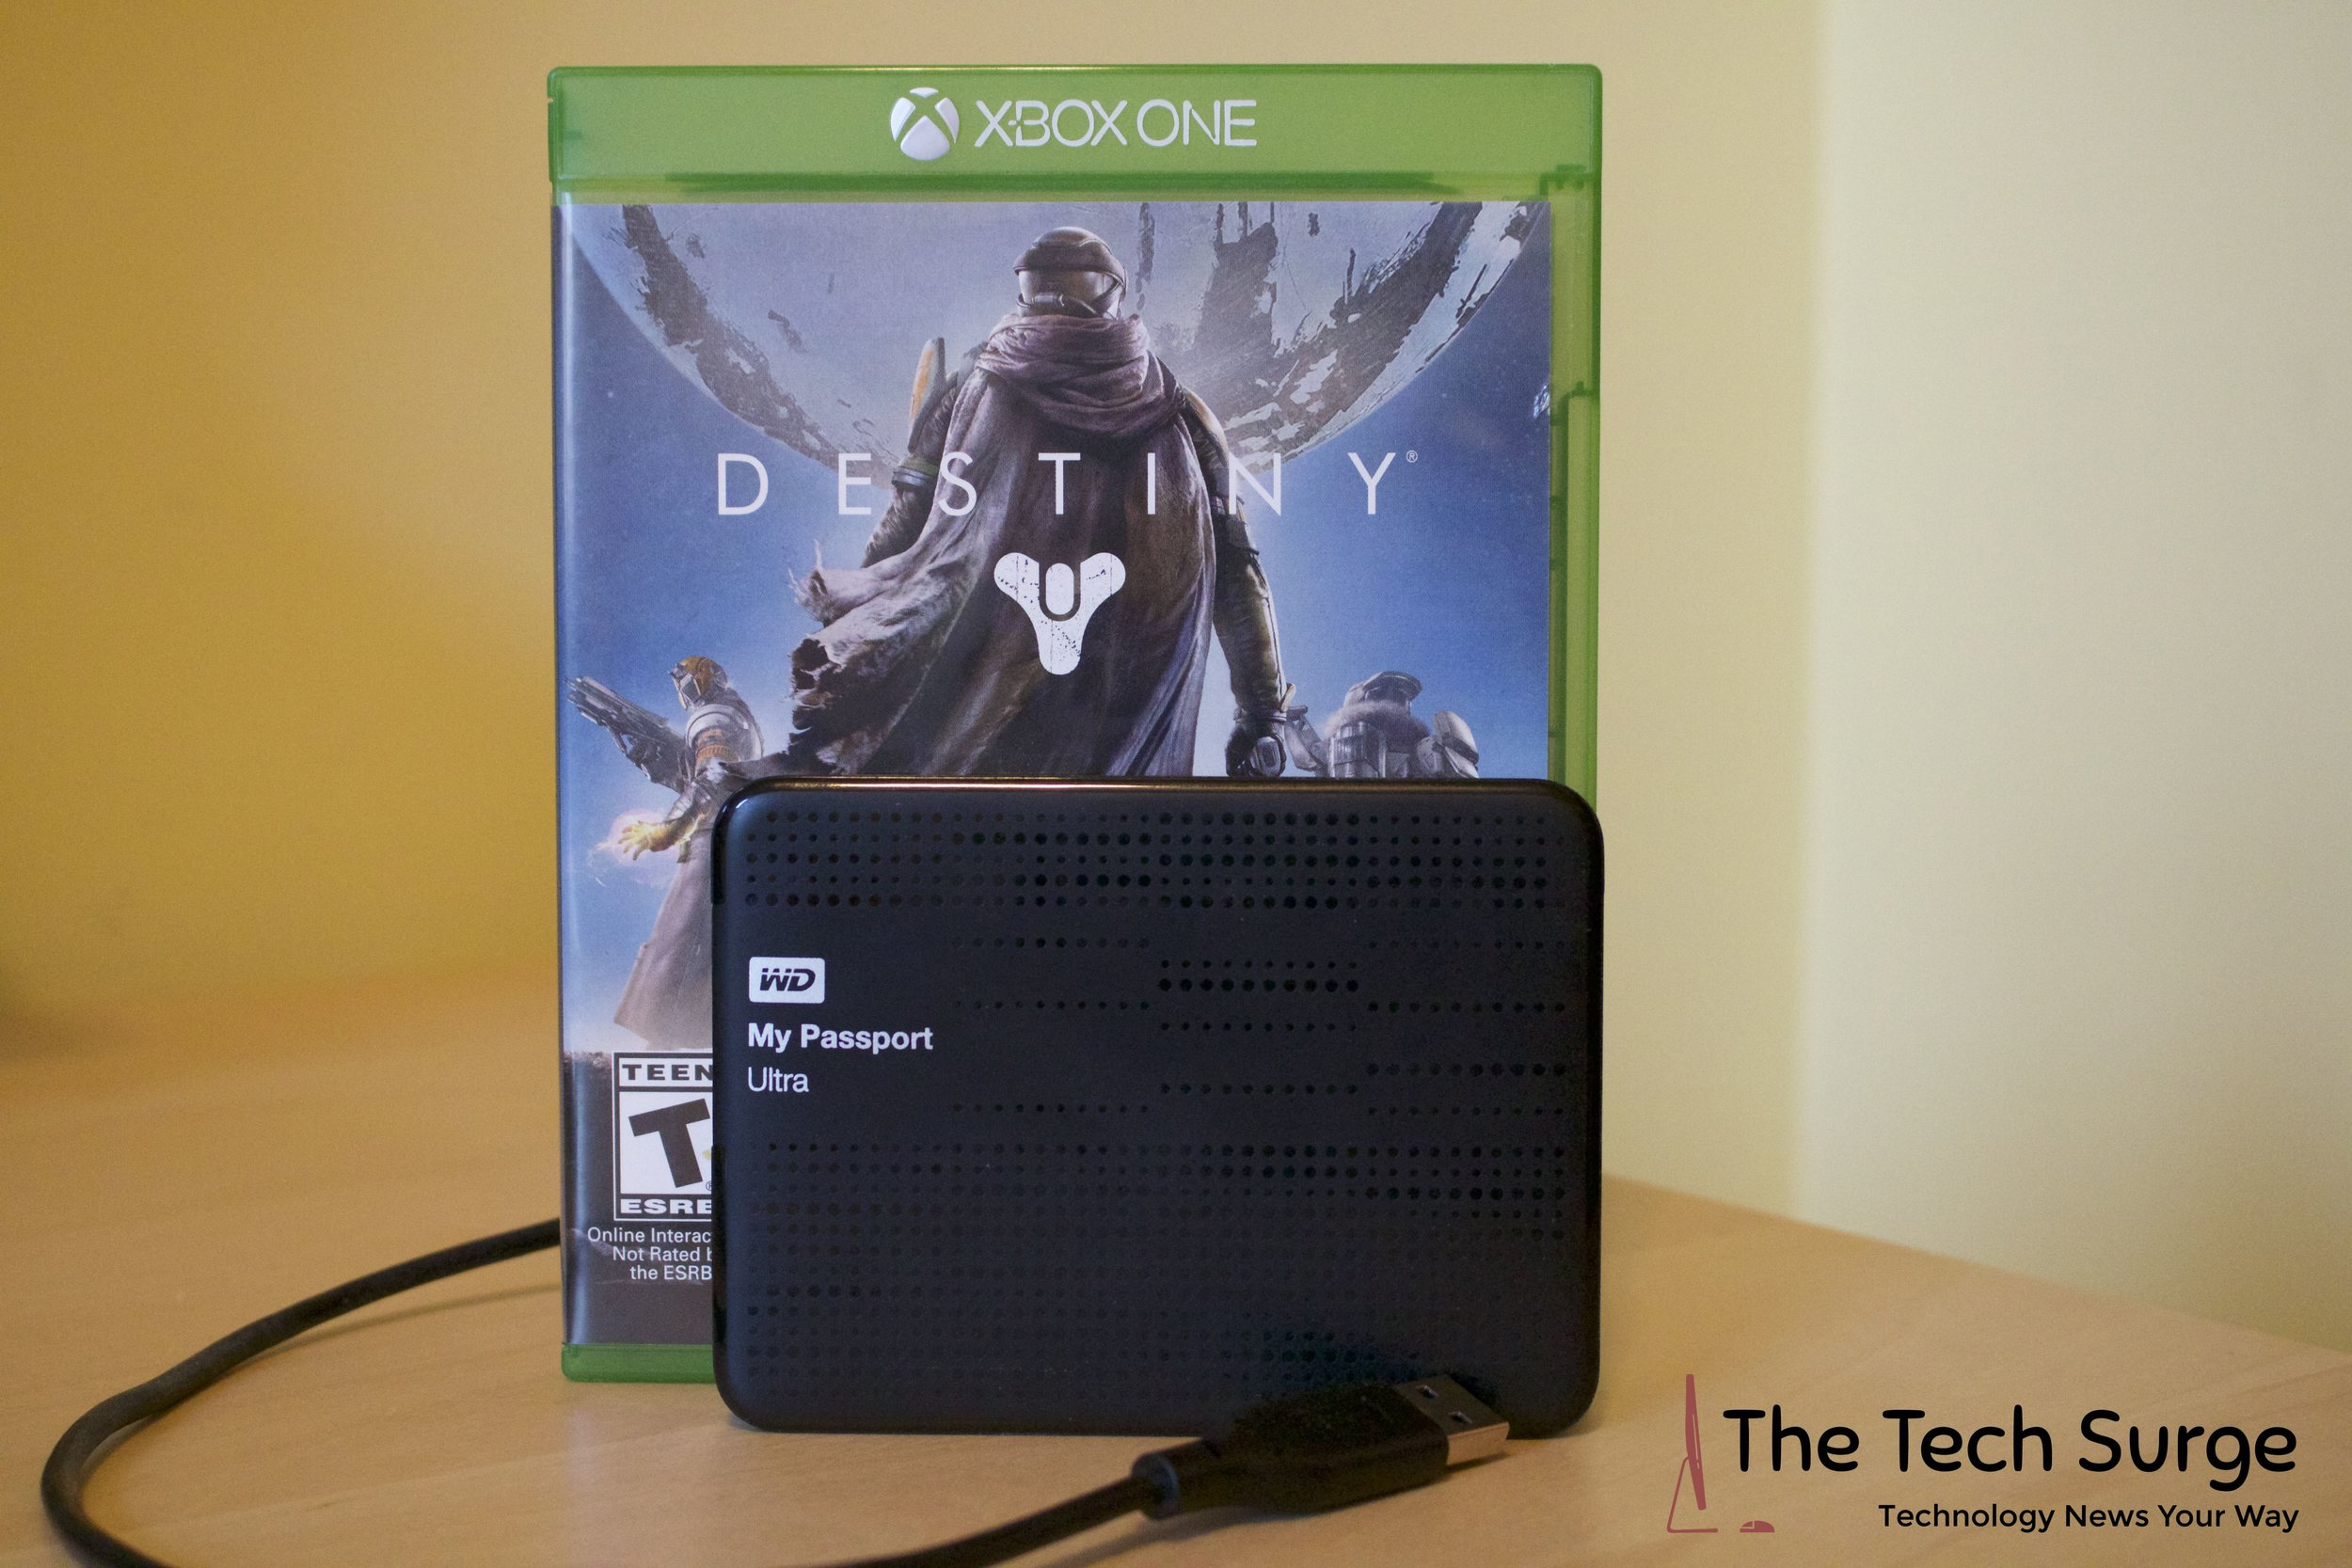 The size and portability of external storage makes digital games a better choice over physical cases for some gamers.